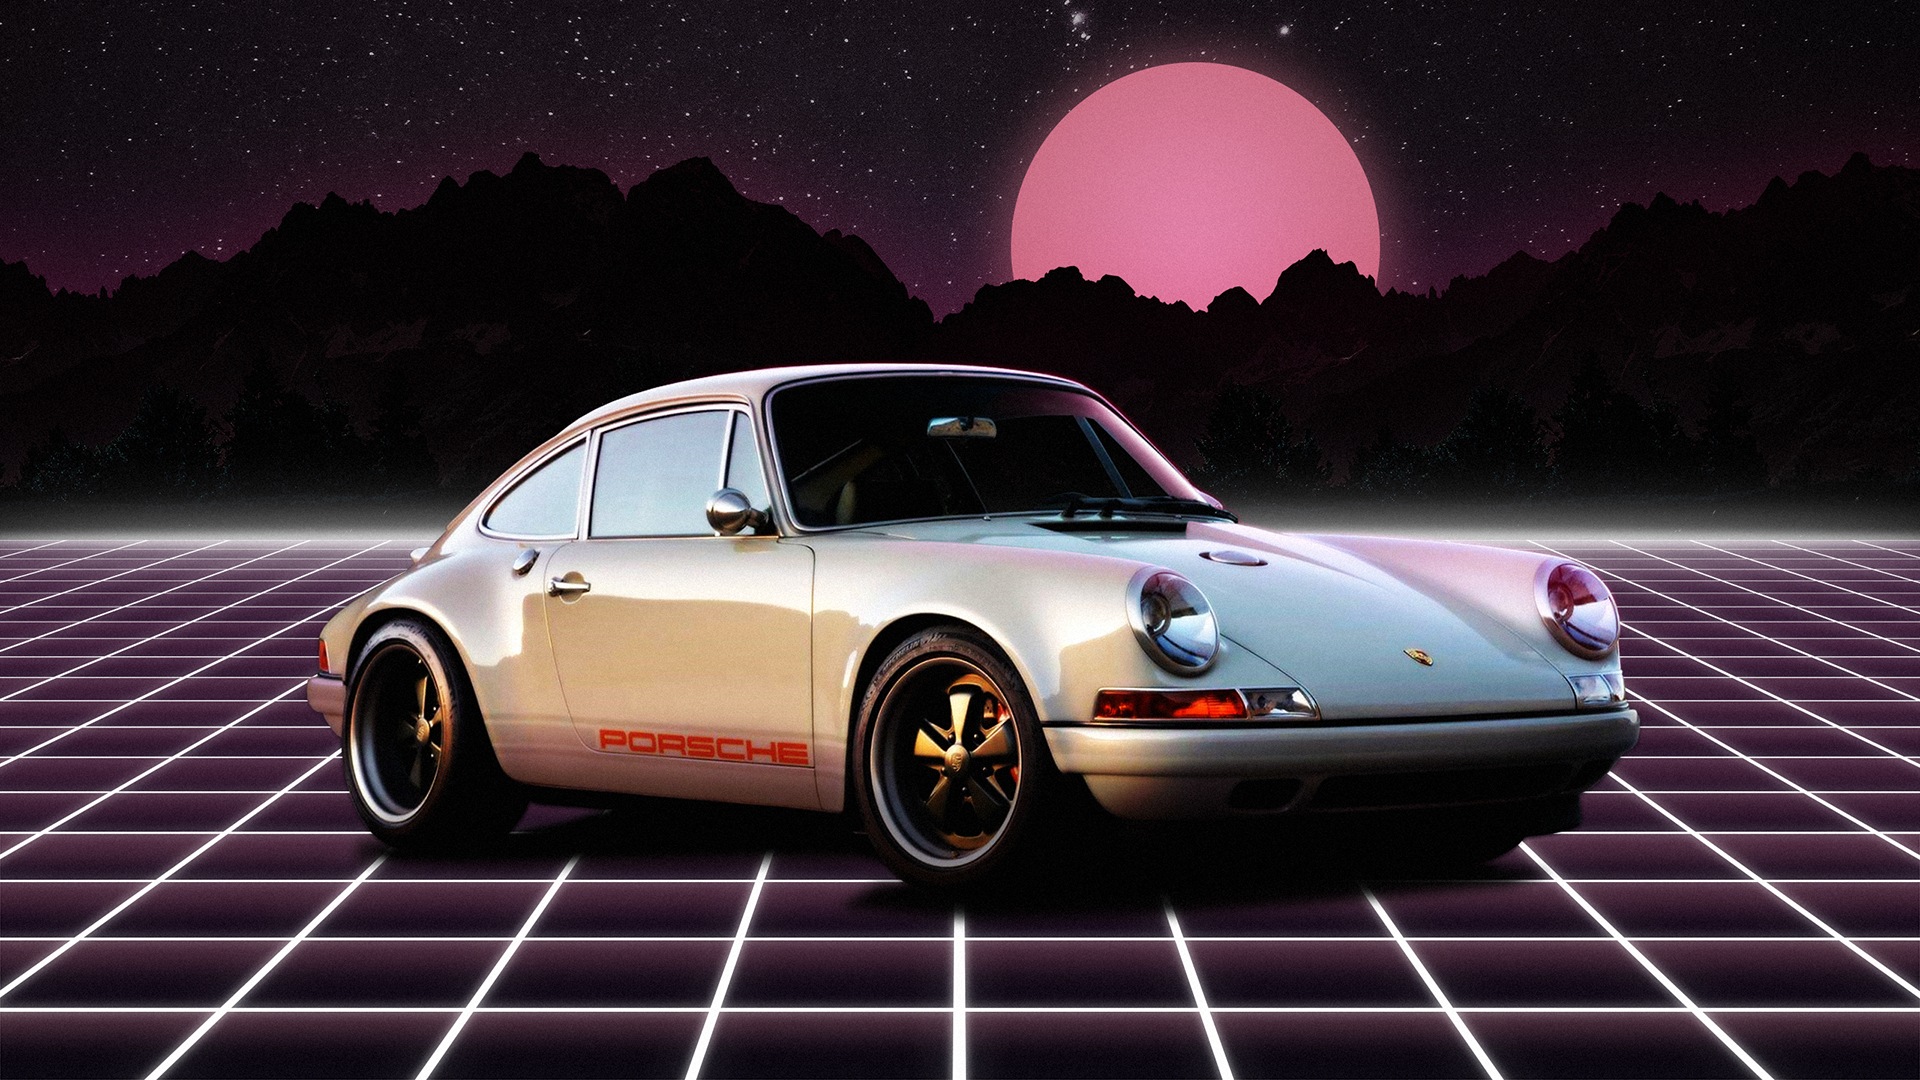 Porsche 911 Wallpaper outrun 1920x1080